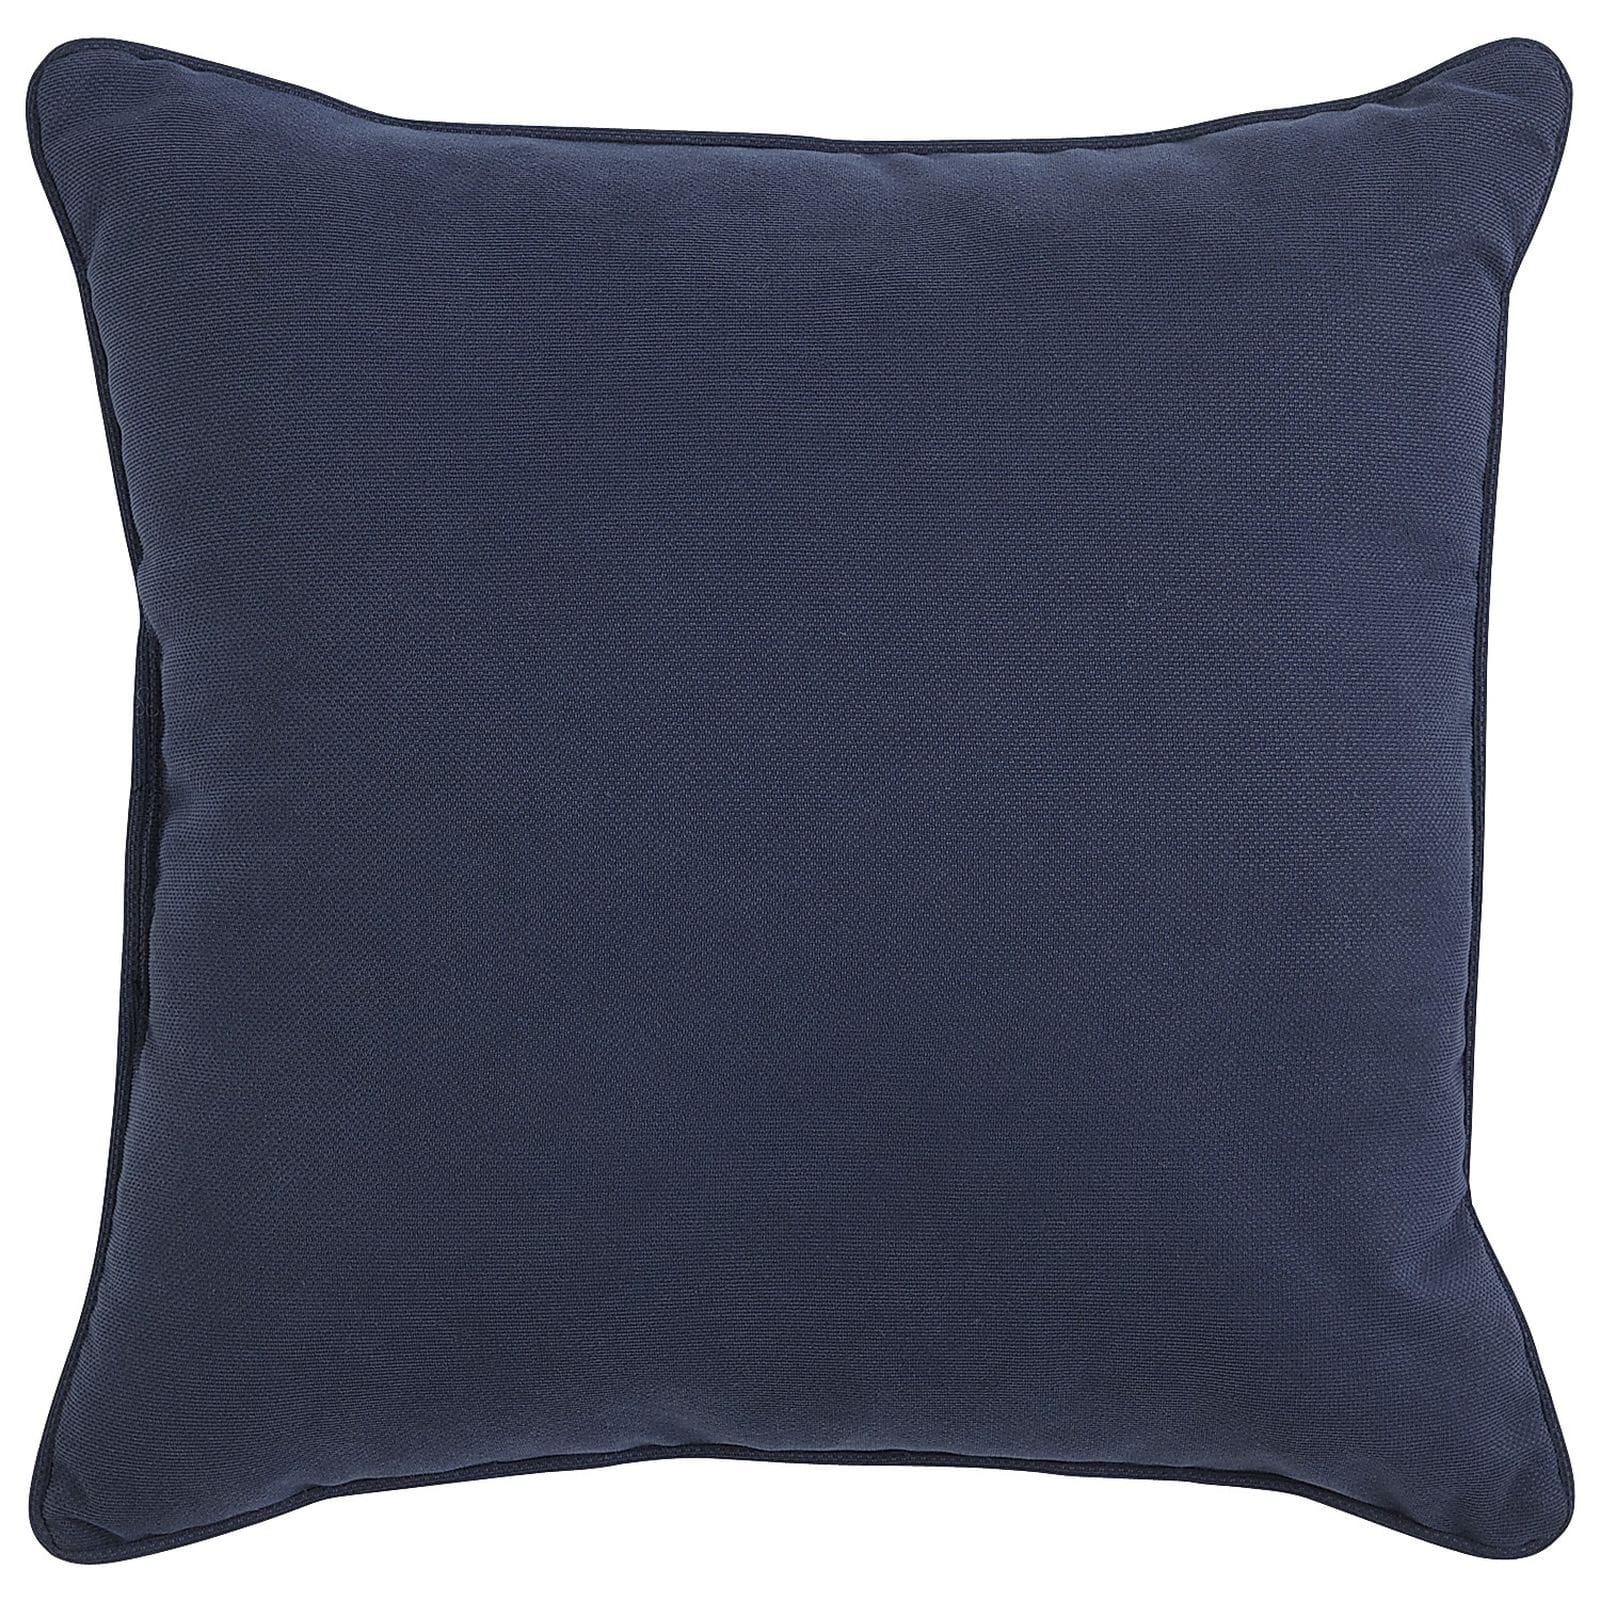 Calliope Indigo Pillow